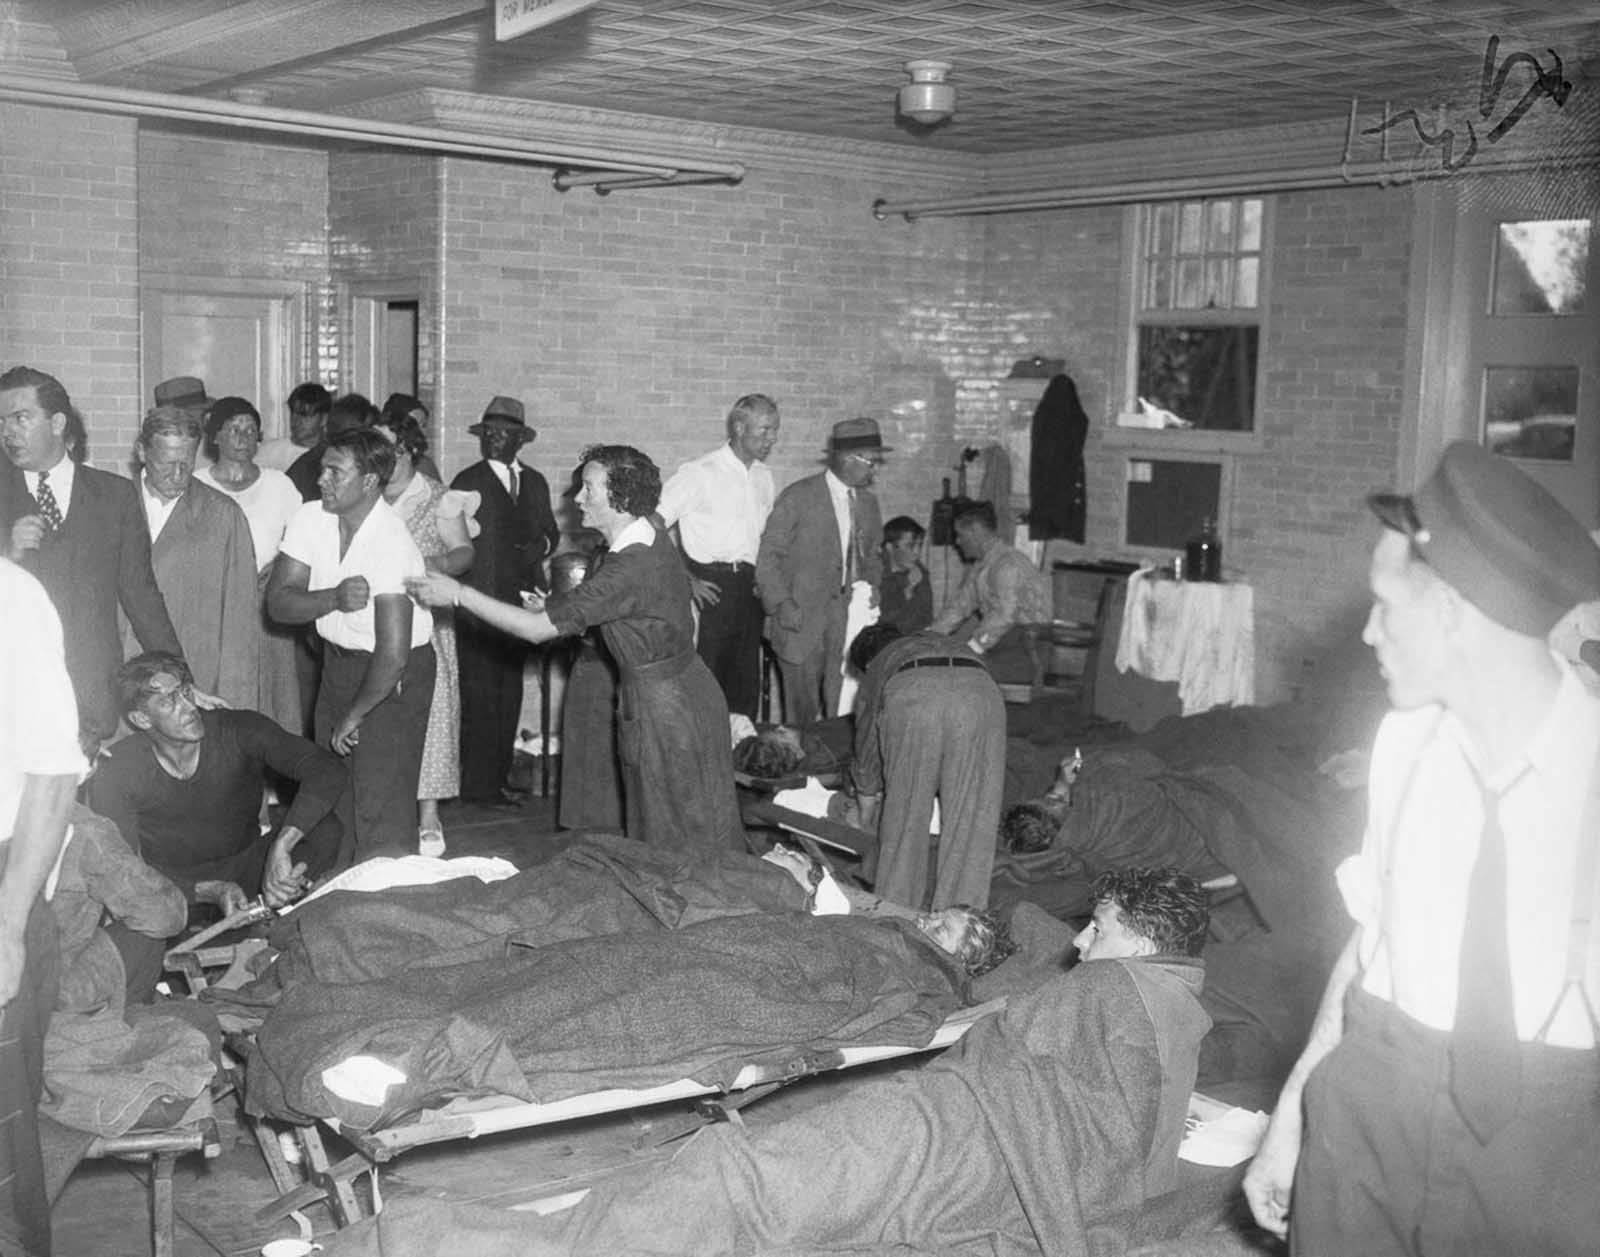 Survivors are treated in the Spring Lake, New Jersey firehouse.